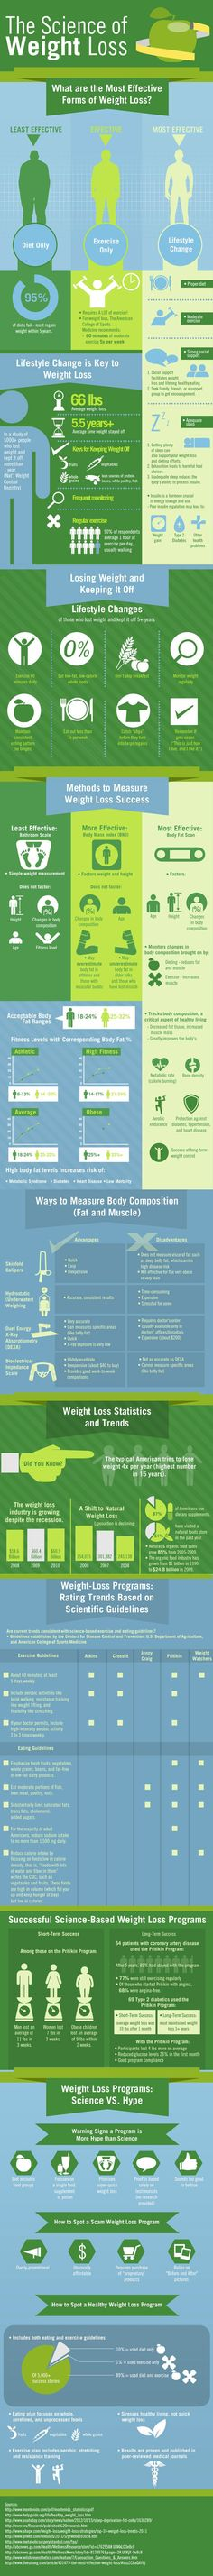 A REAL breakdown of ways to lose weight. Easy to understand, scientifically informative, and, finally, common sense info!